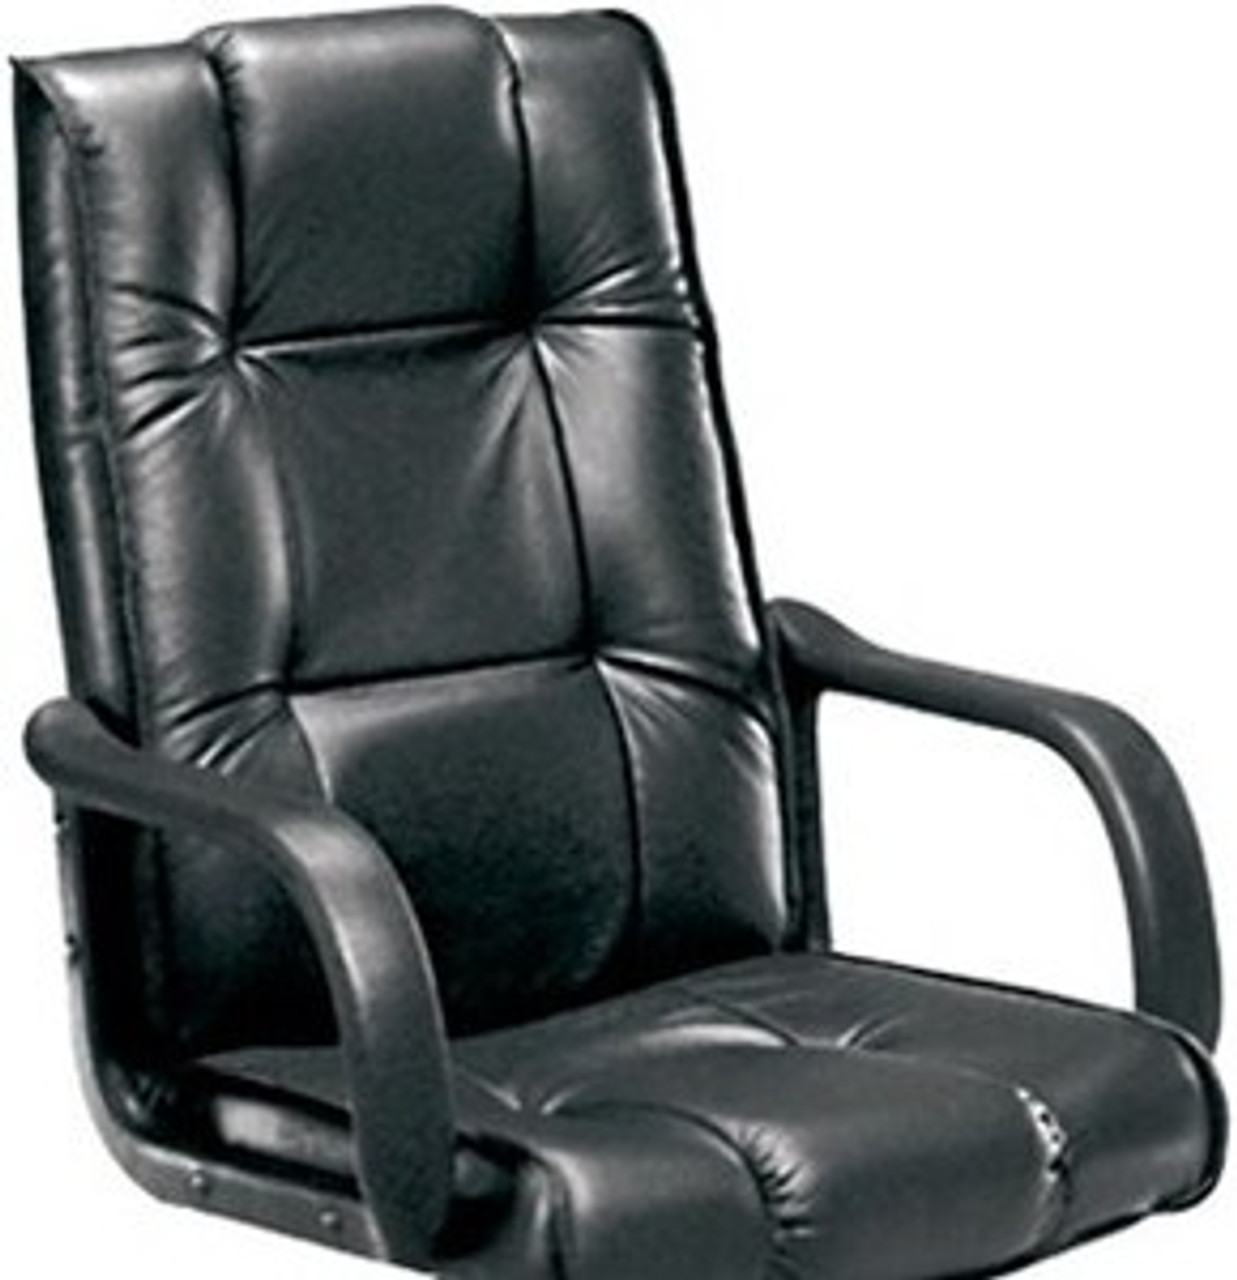 Executive Chair Parts Replacement Arms Armrest 1 Pair